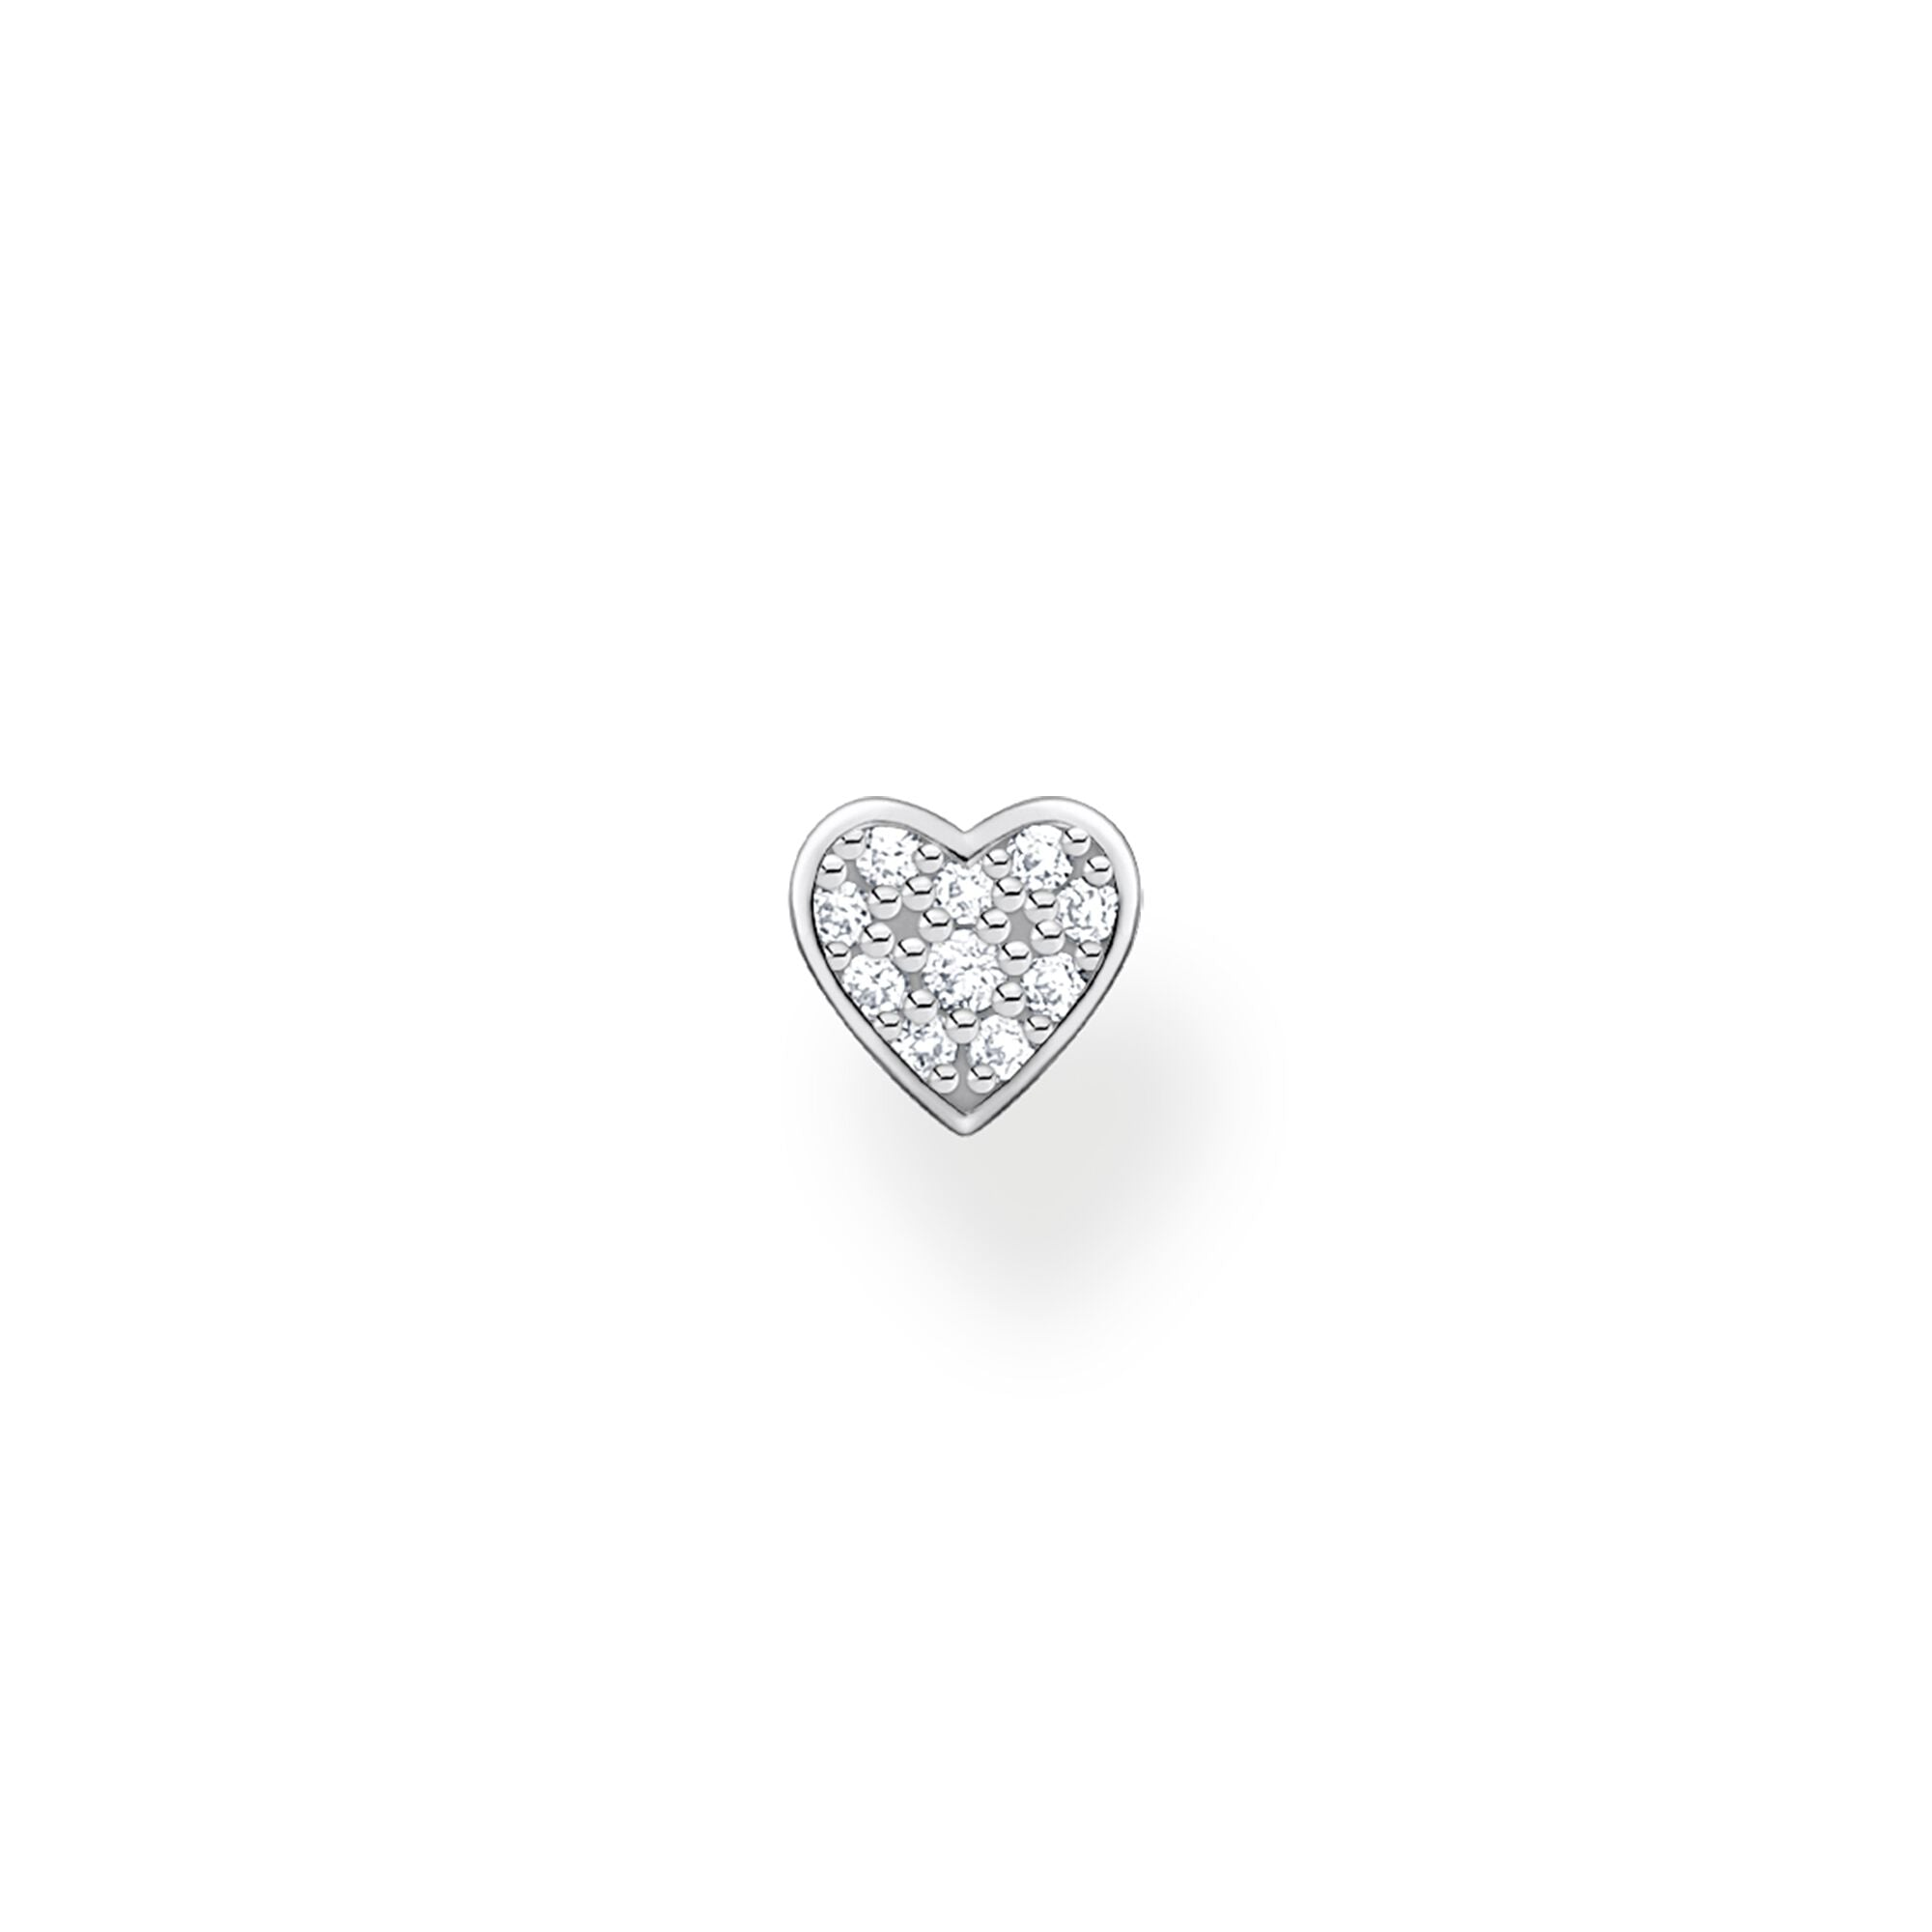 Thomas Sabo, Sterling Silver, Cubic Zirconia, Pave, Heart, Single Earring Stud, Push backing, Ottawa